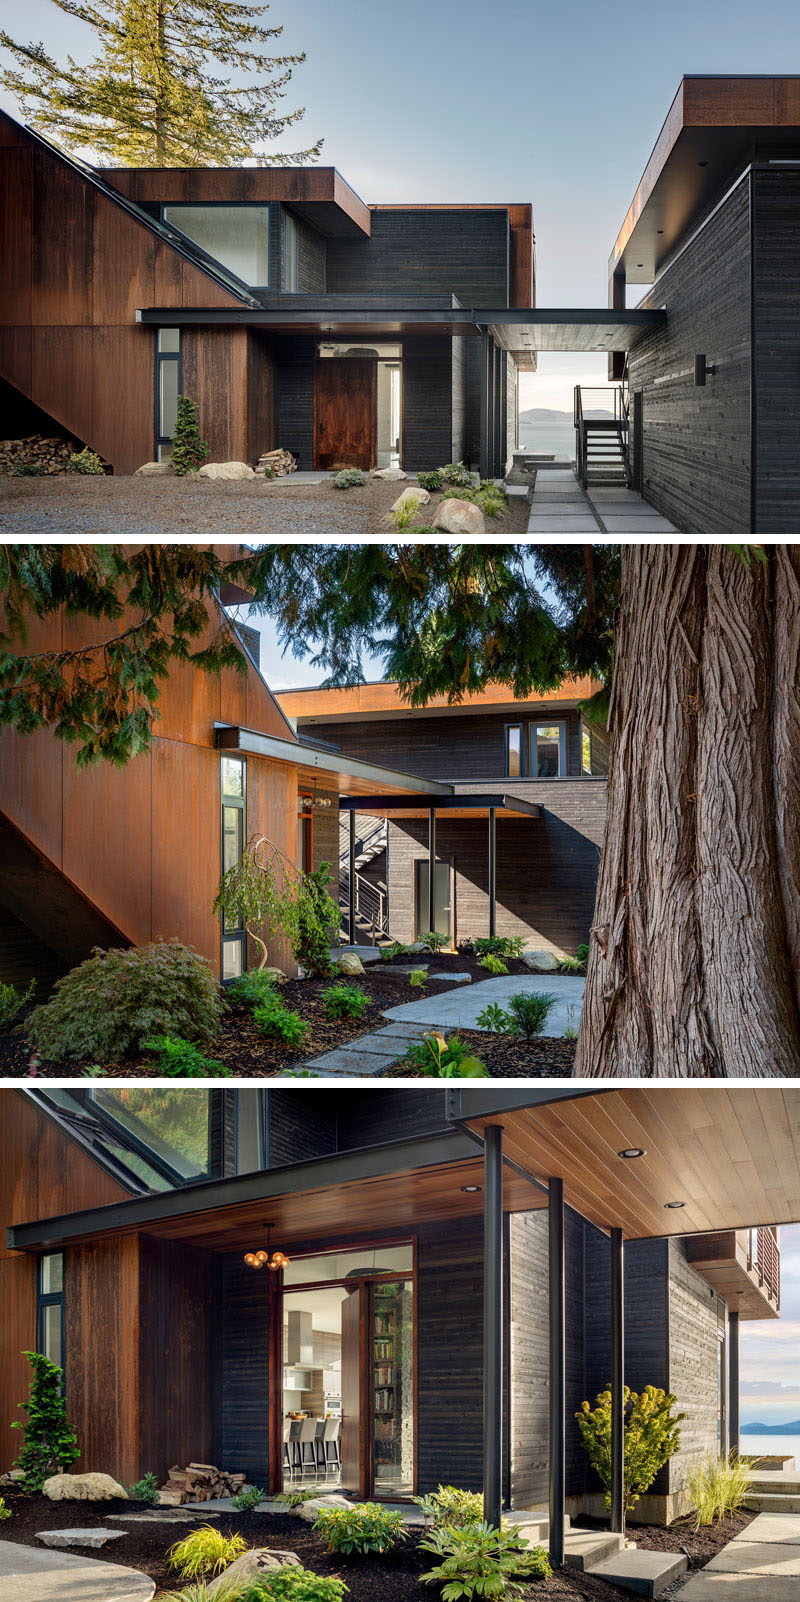 Natural steel (weathered over time) and black stained cedar were chosen to blend this house in with the landscape, placing windows only as needed for light and connection with the neighborhood. #ModernHouse #WeatheredSteel #BlackStainedCedar